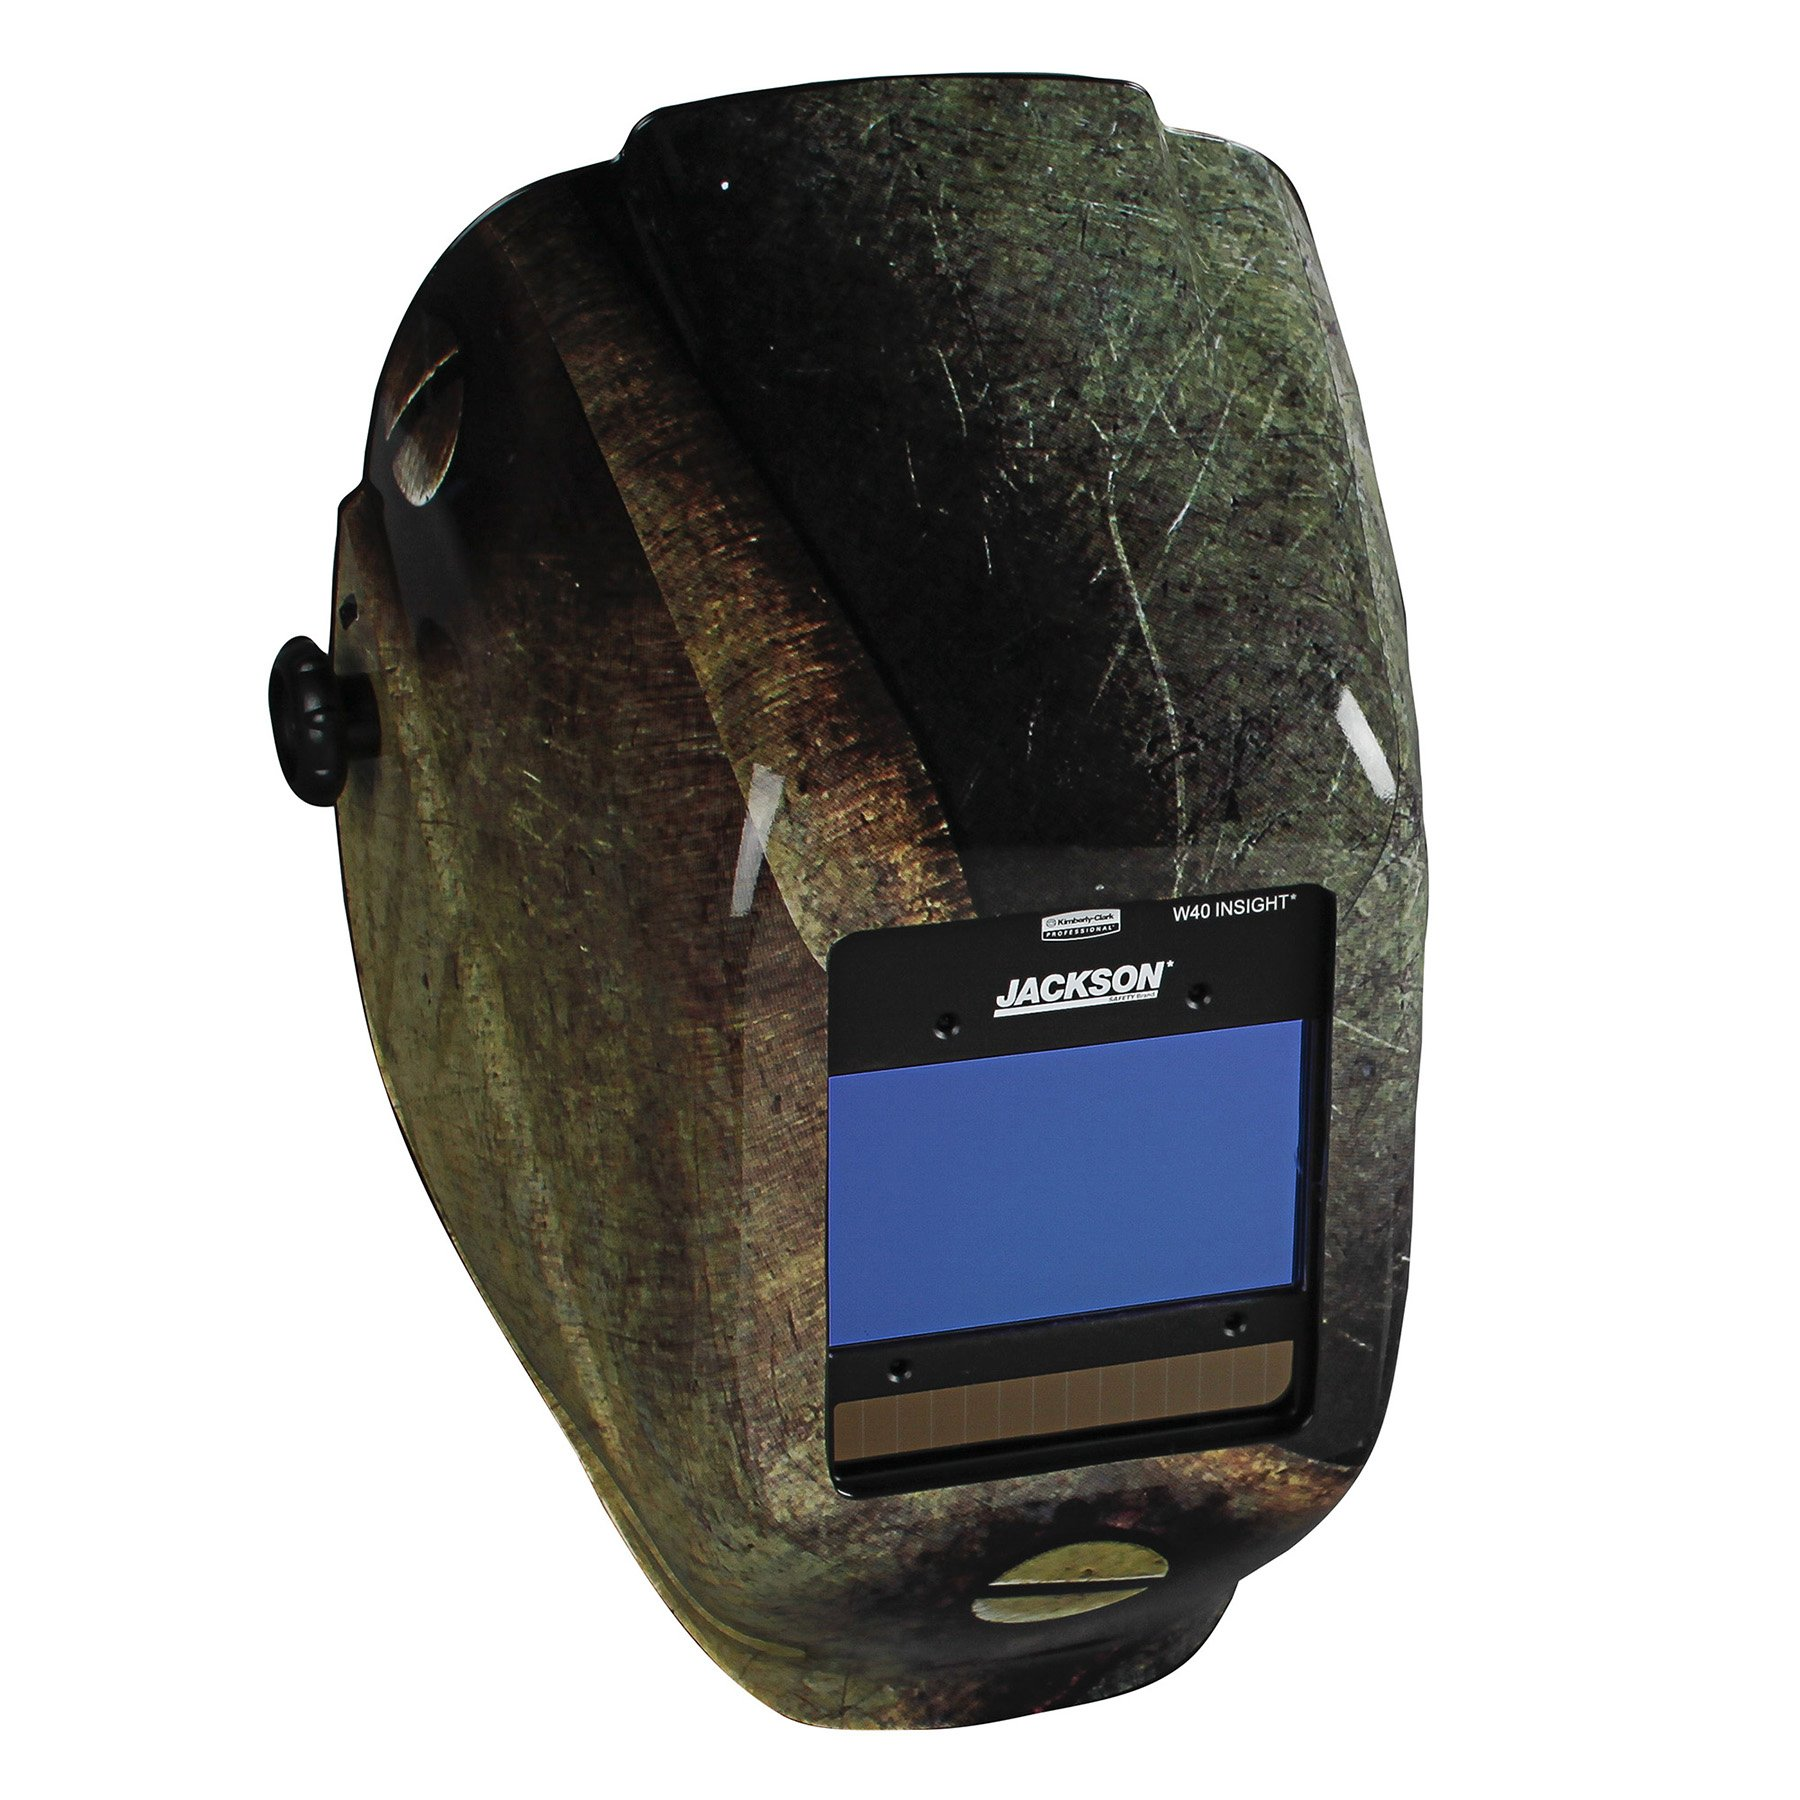 Jackson Safety Insight Variable Auto Darkening Welding Helmet (46108), HaloX , ADF, Metal Graphic